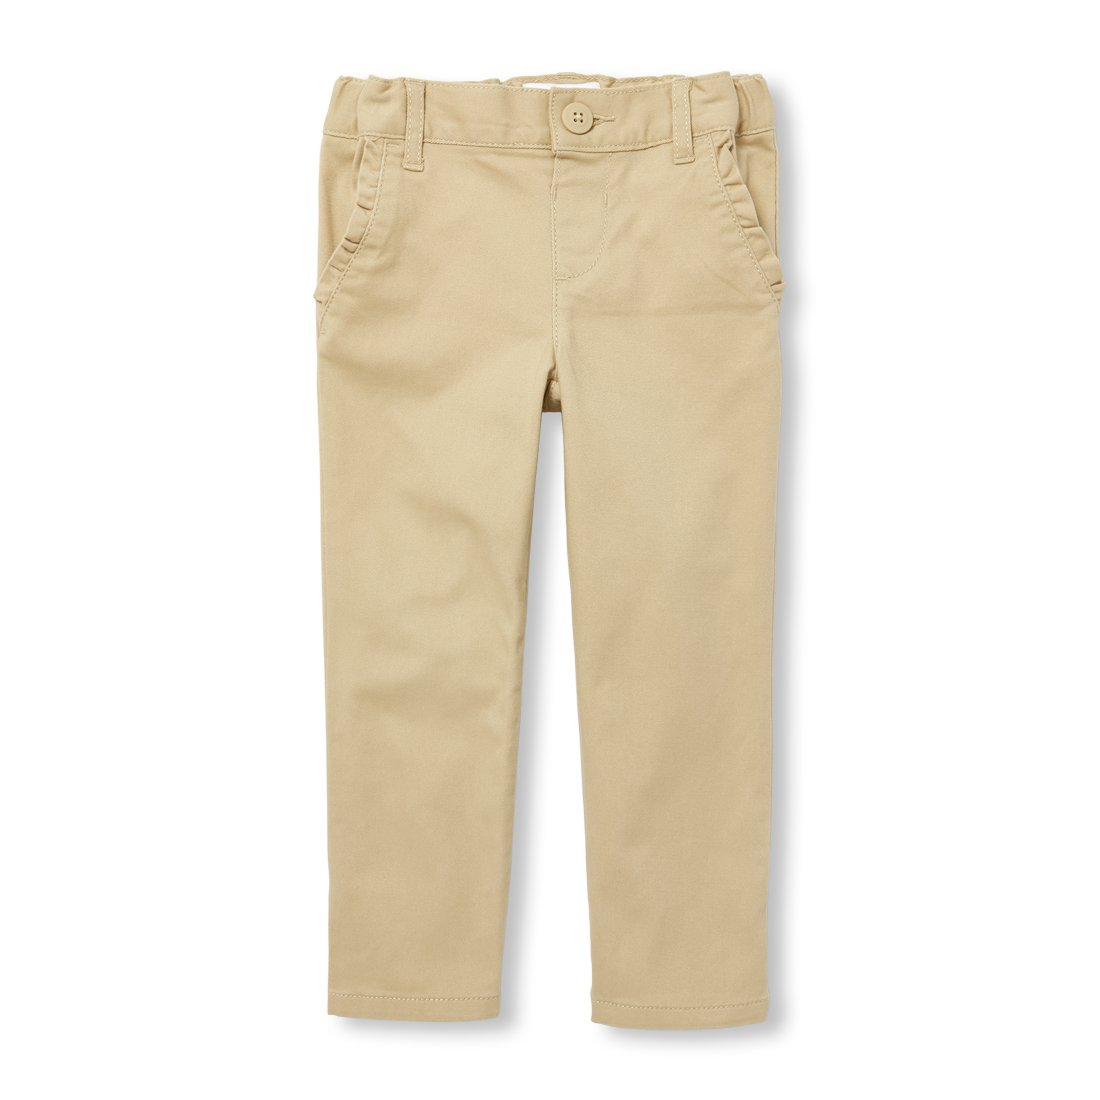 The Children's Place Girls' Slim Uniform Pant The Children's Place 2043097